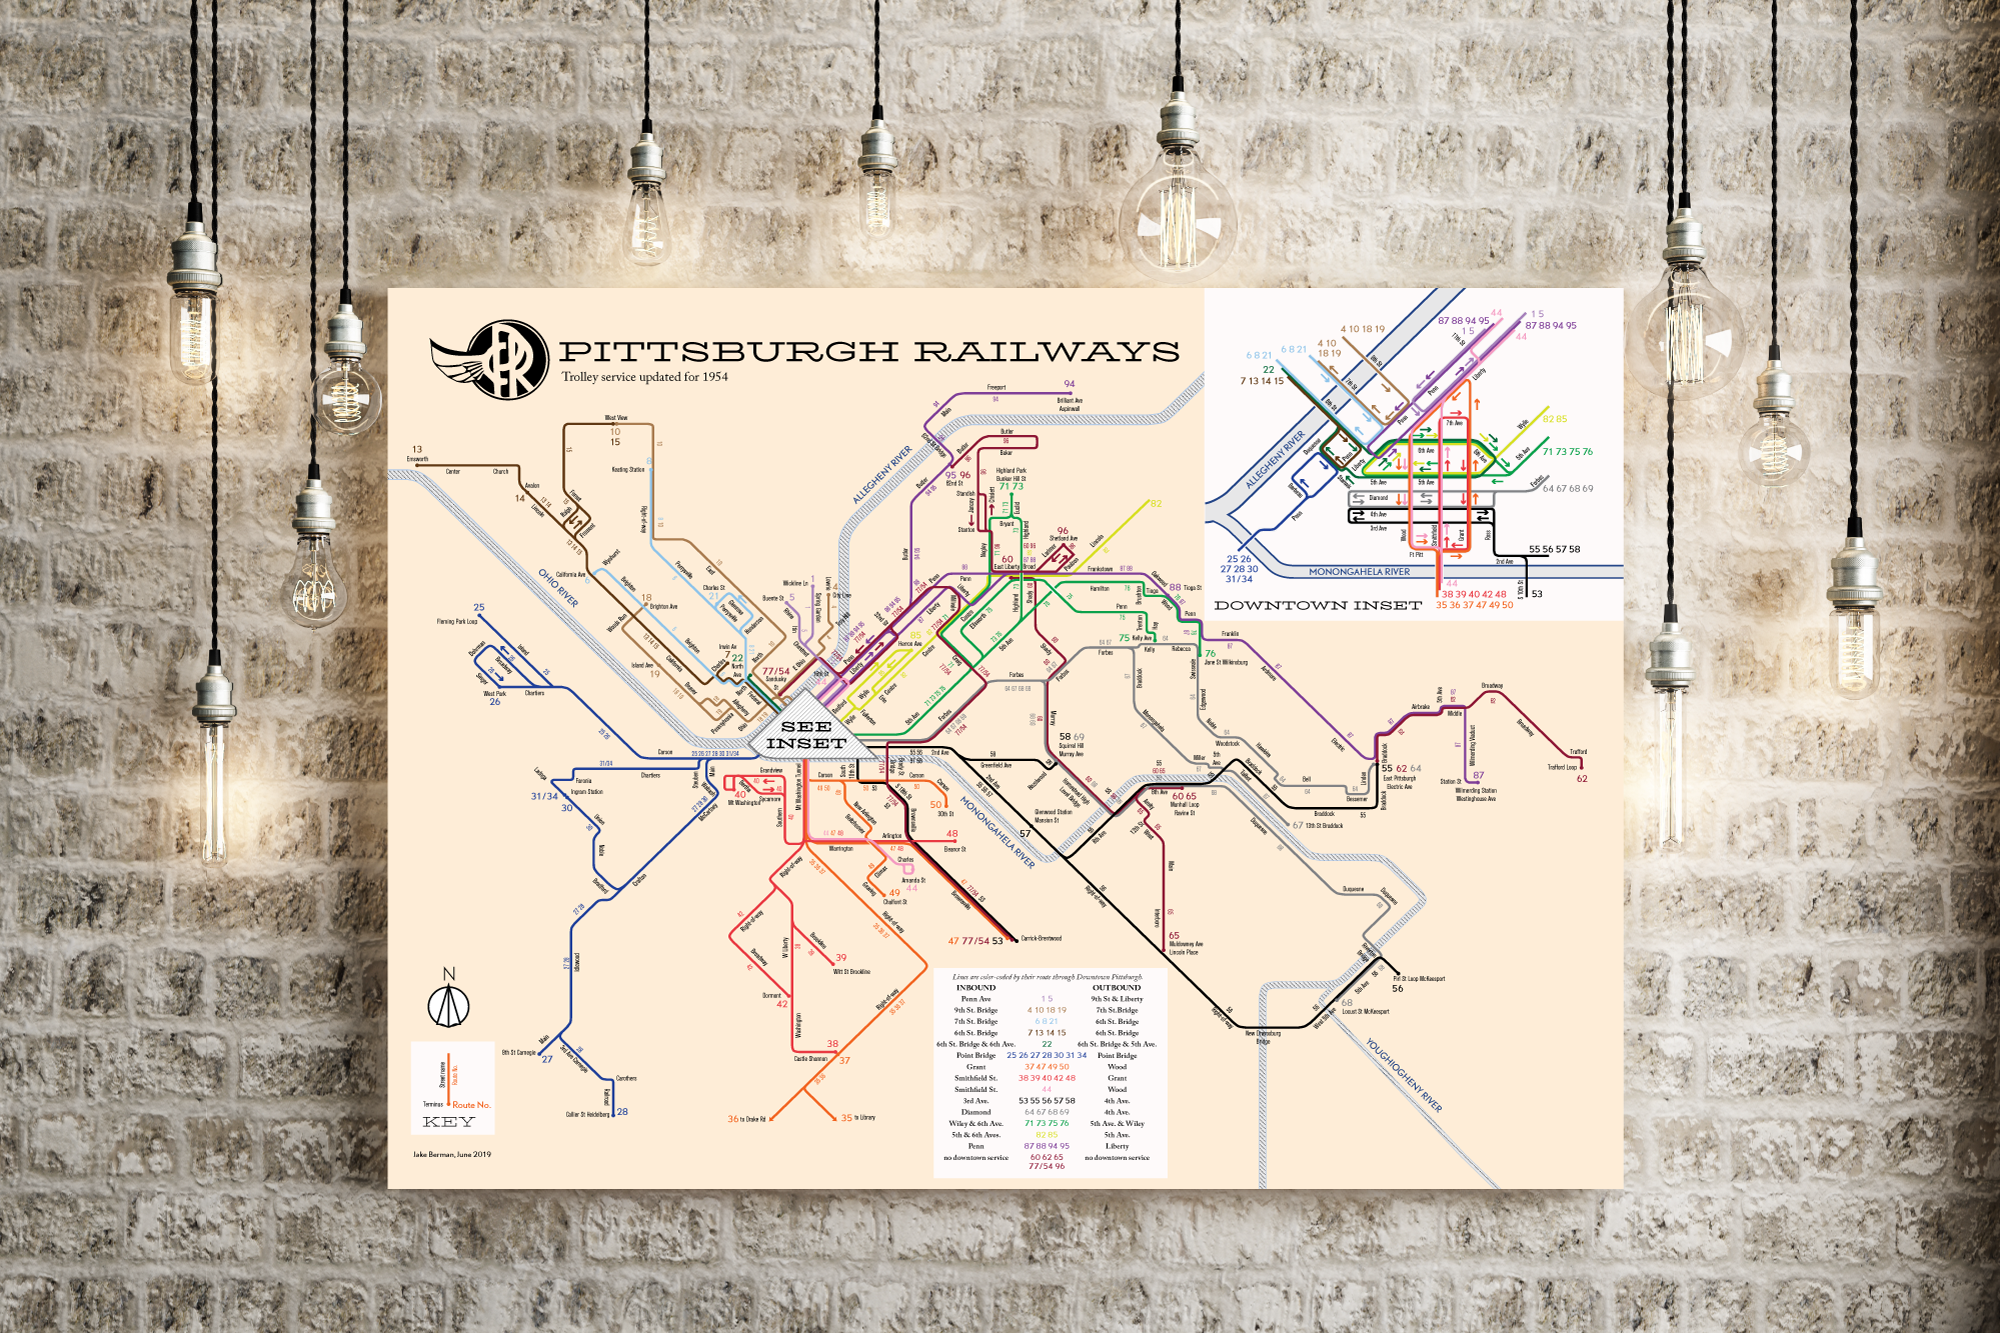 Pittsburgh streetcar system map, 1954